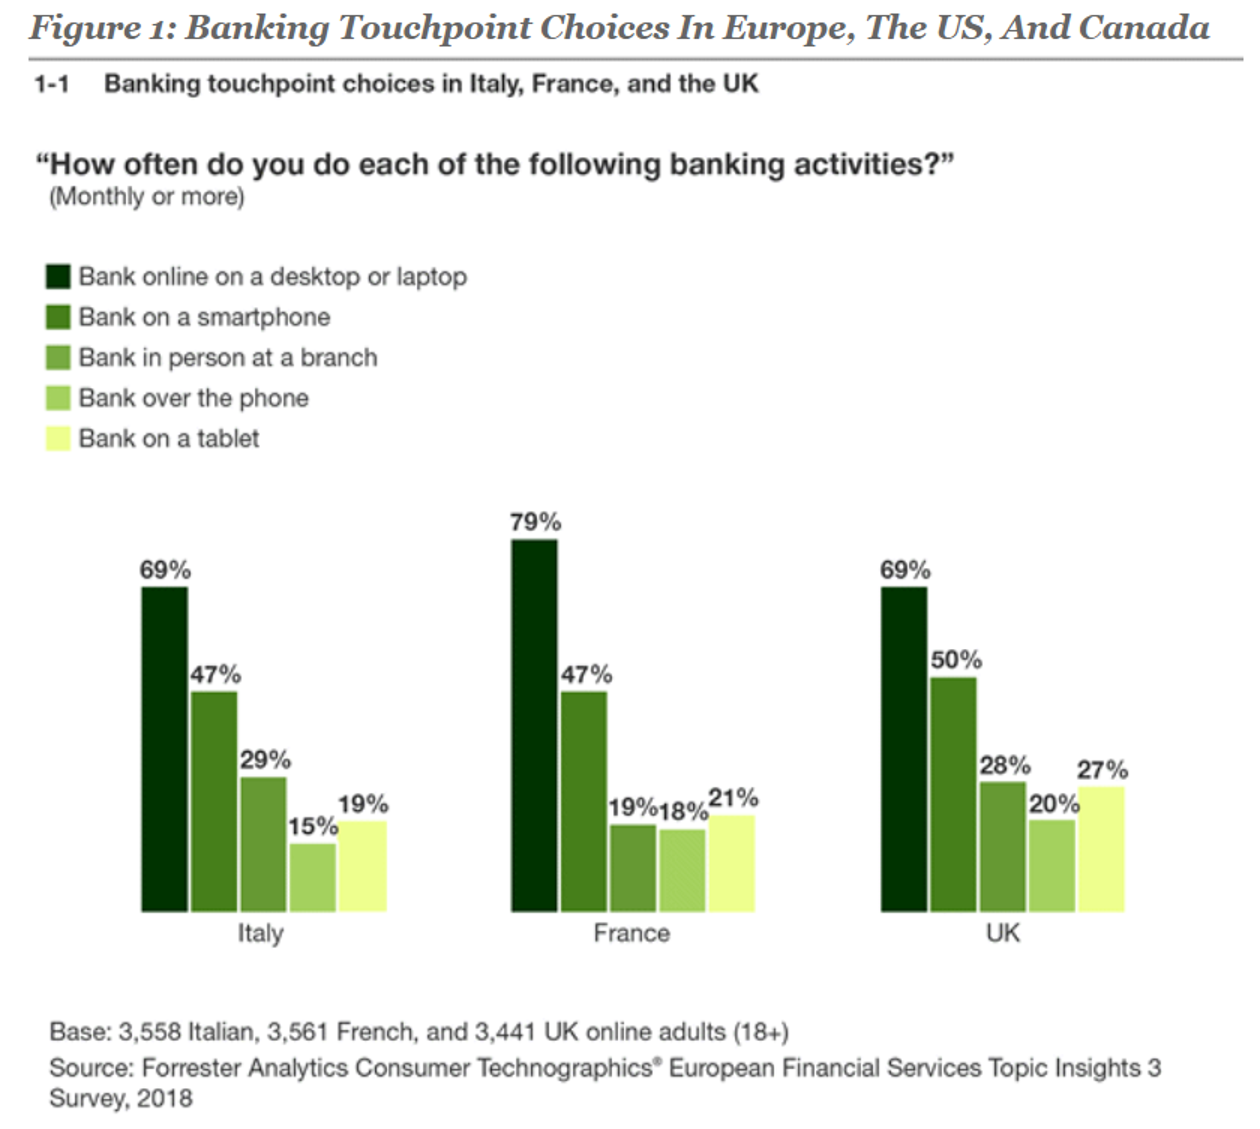 Banking Touchpoint Choices in Europe